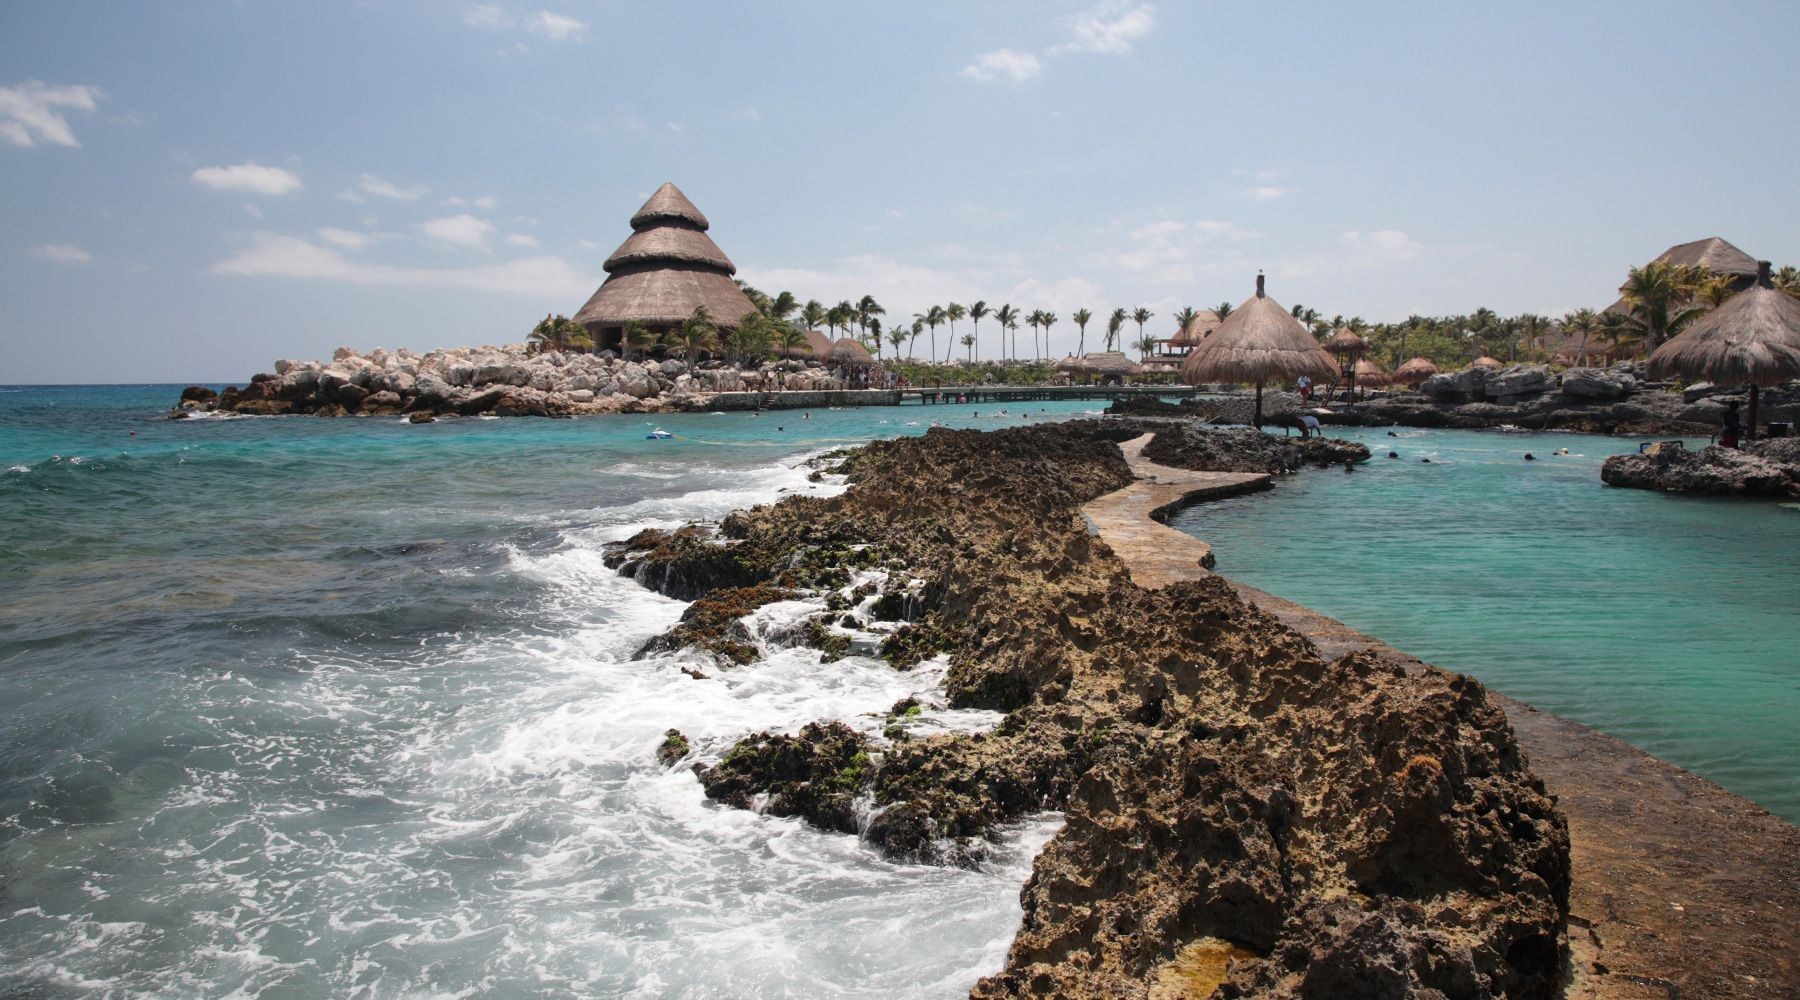 Located just off the coast of the Yucatan Peninsula, Cozumel is a laid-back Caribbean jewel of an island, where everything revolves around its warm blue waters.